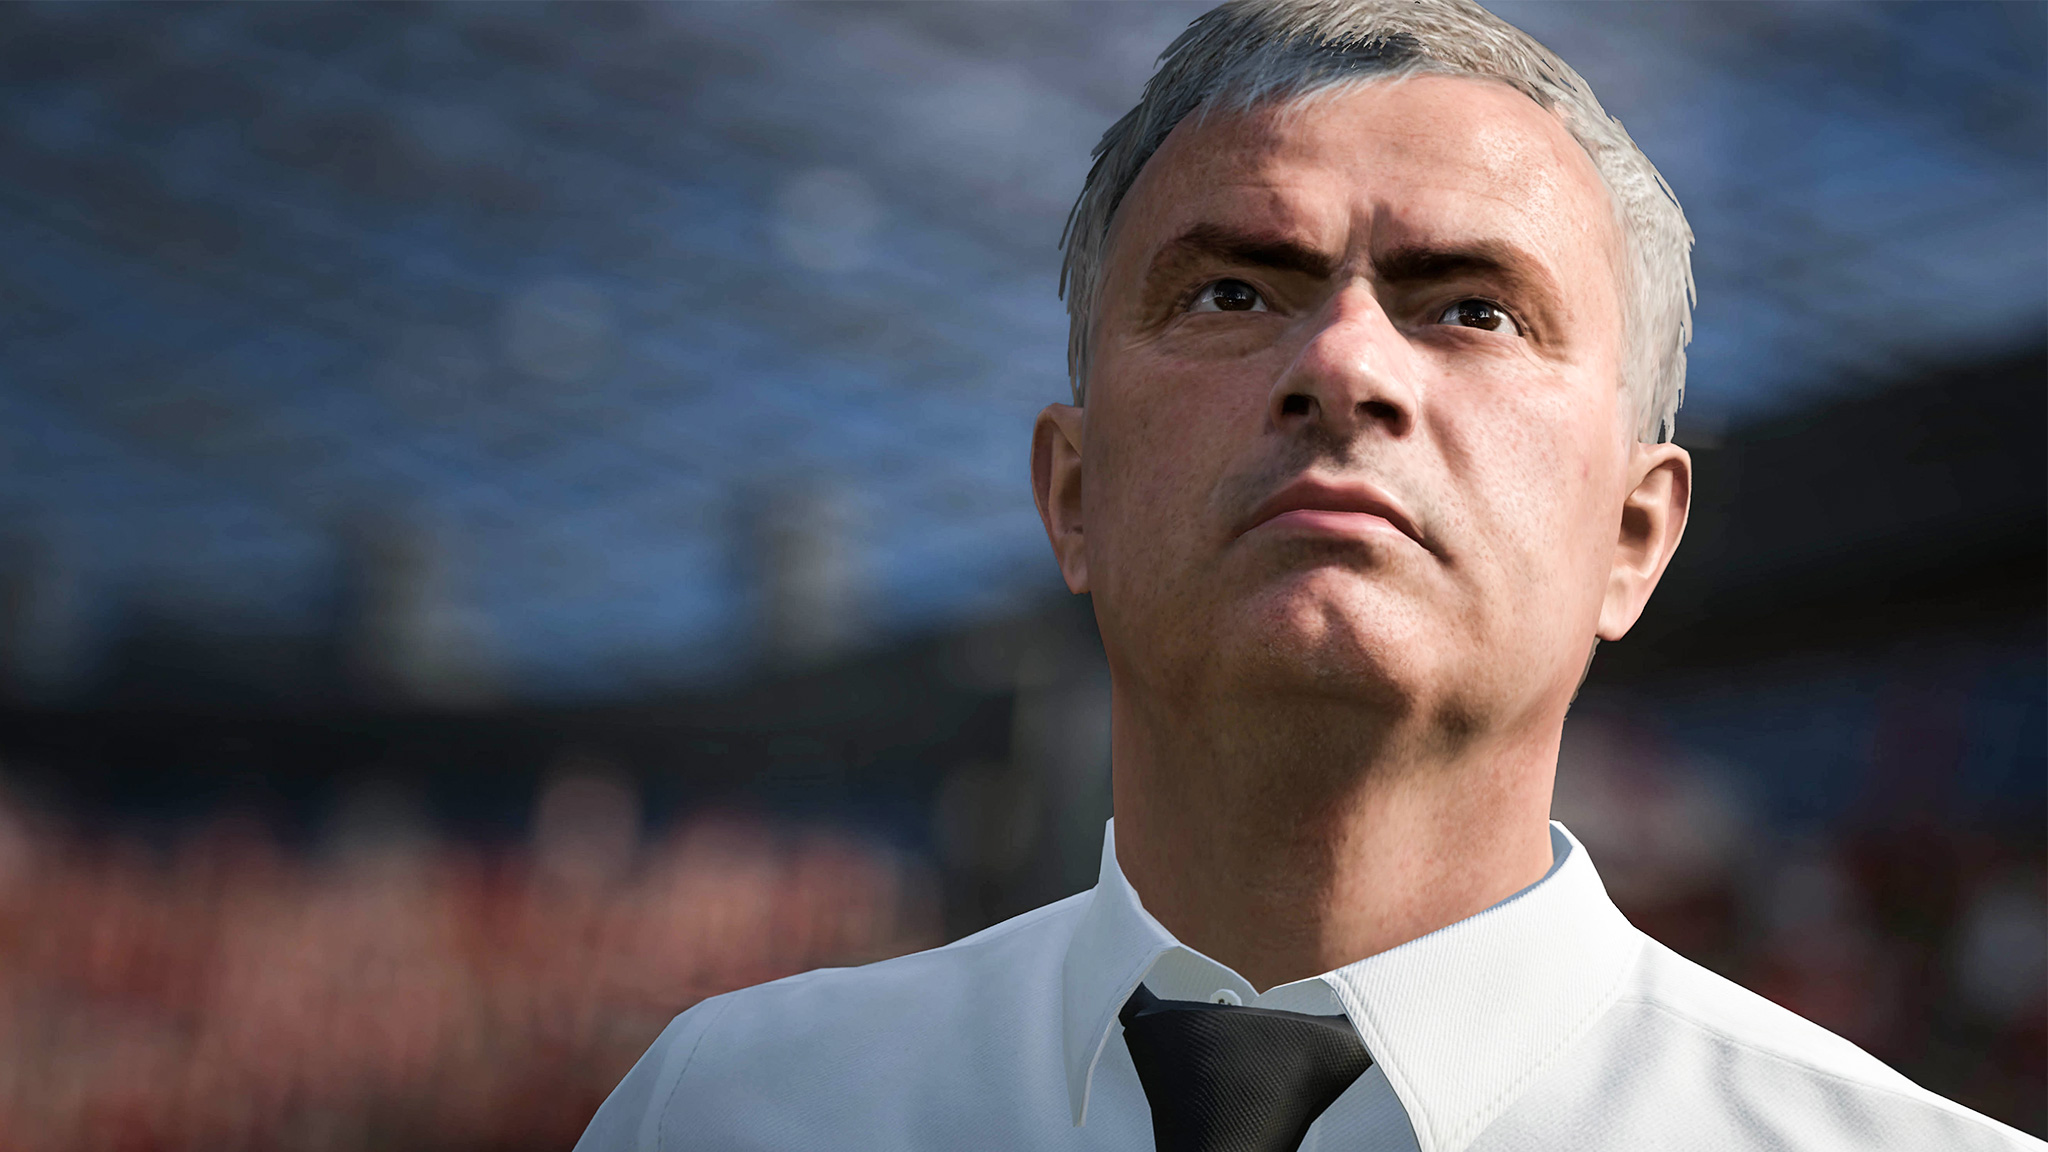 Mourinho is now in FIFA 17 along with all other 19 Premier League managers